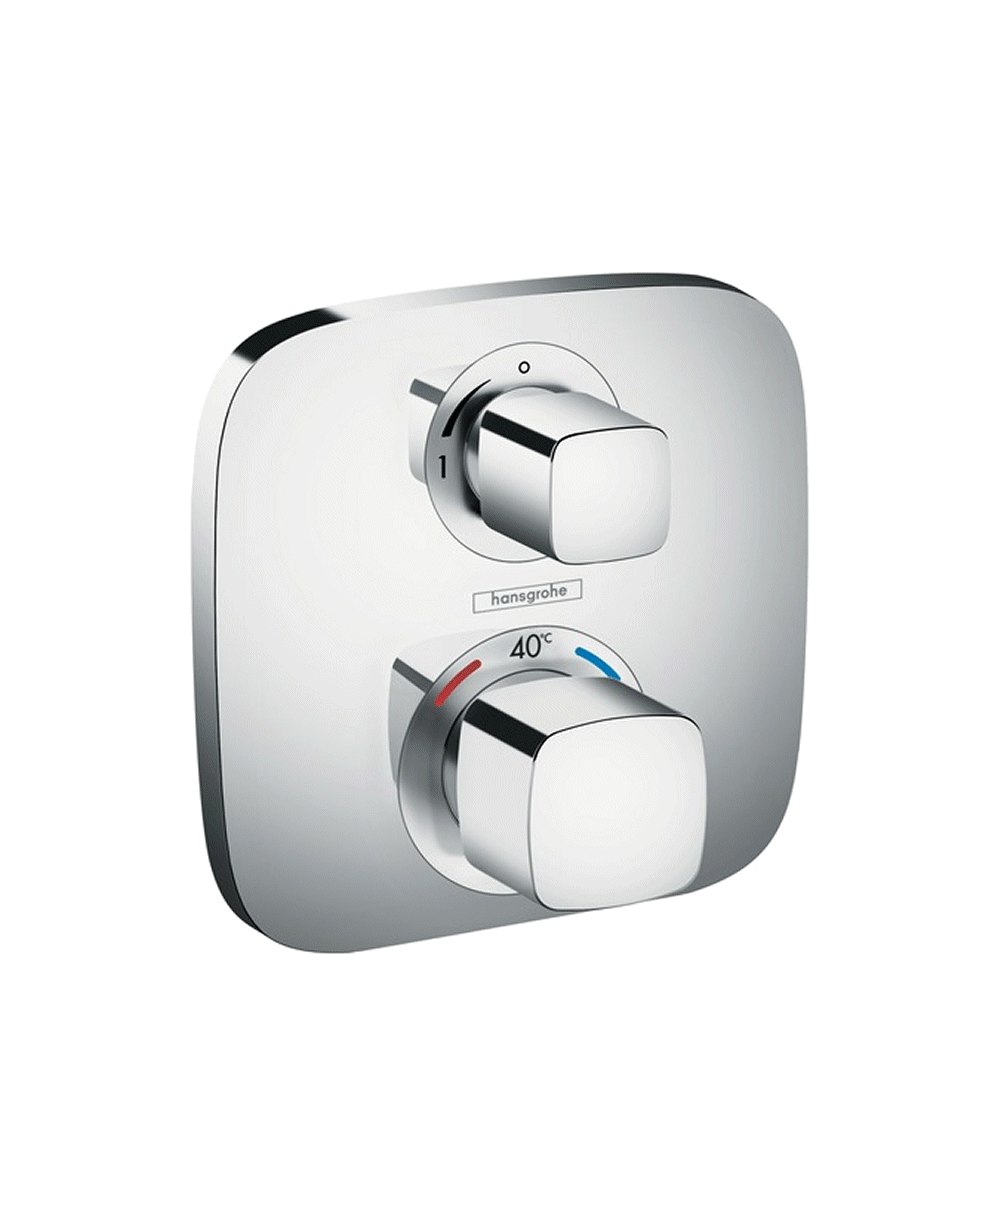 Hansgrohe Ecostat E 1 Outlet Concealed Thermostatic Shower Mixer